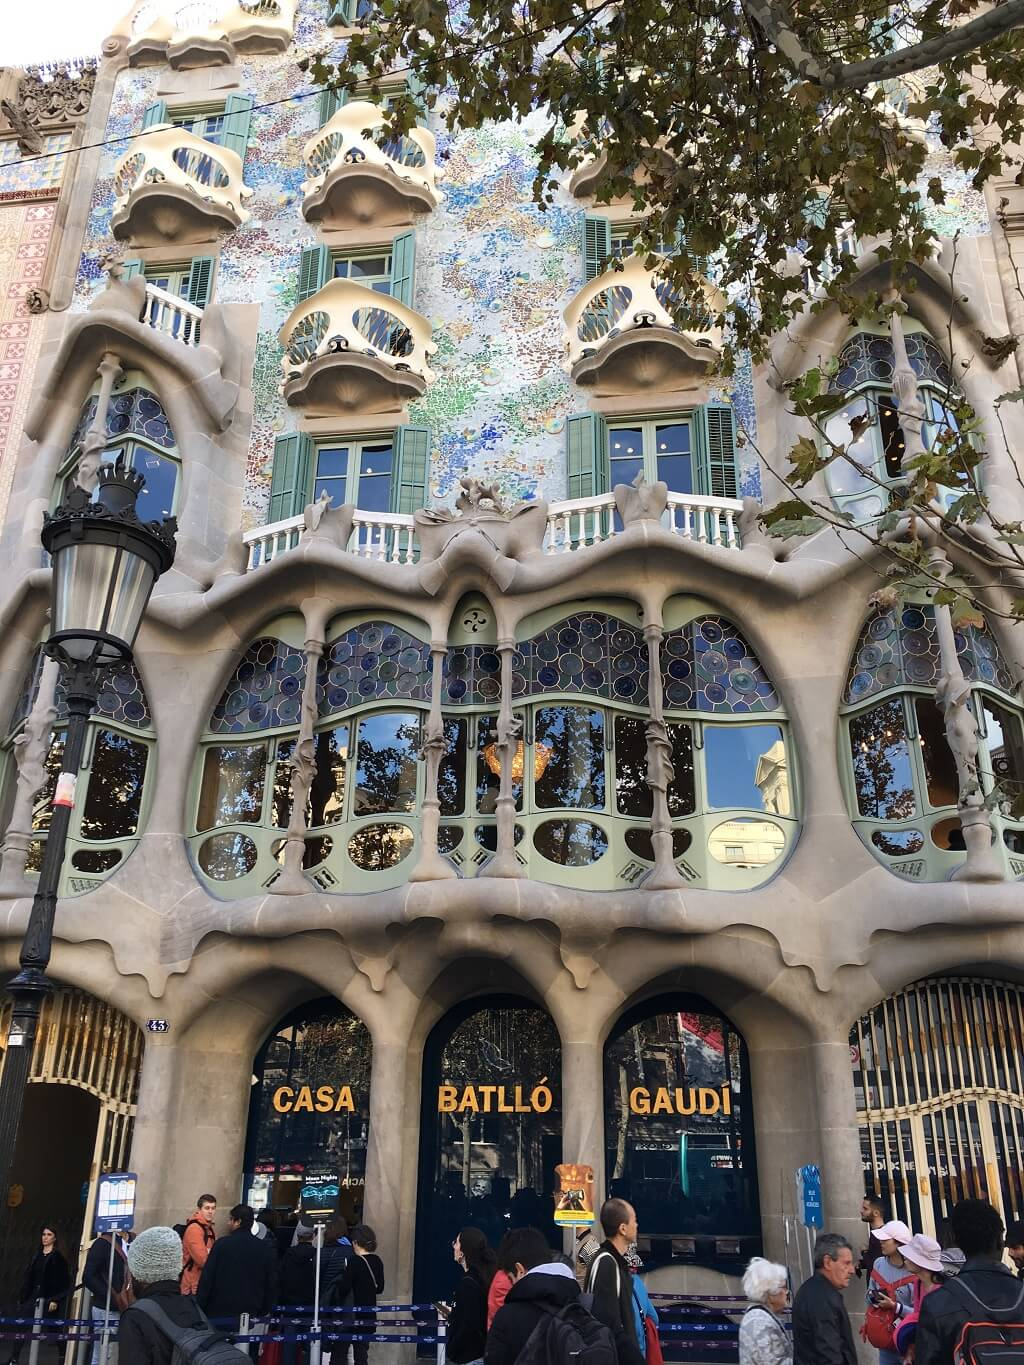 Casa Batllo is a must see on your two days in Barcelona